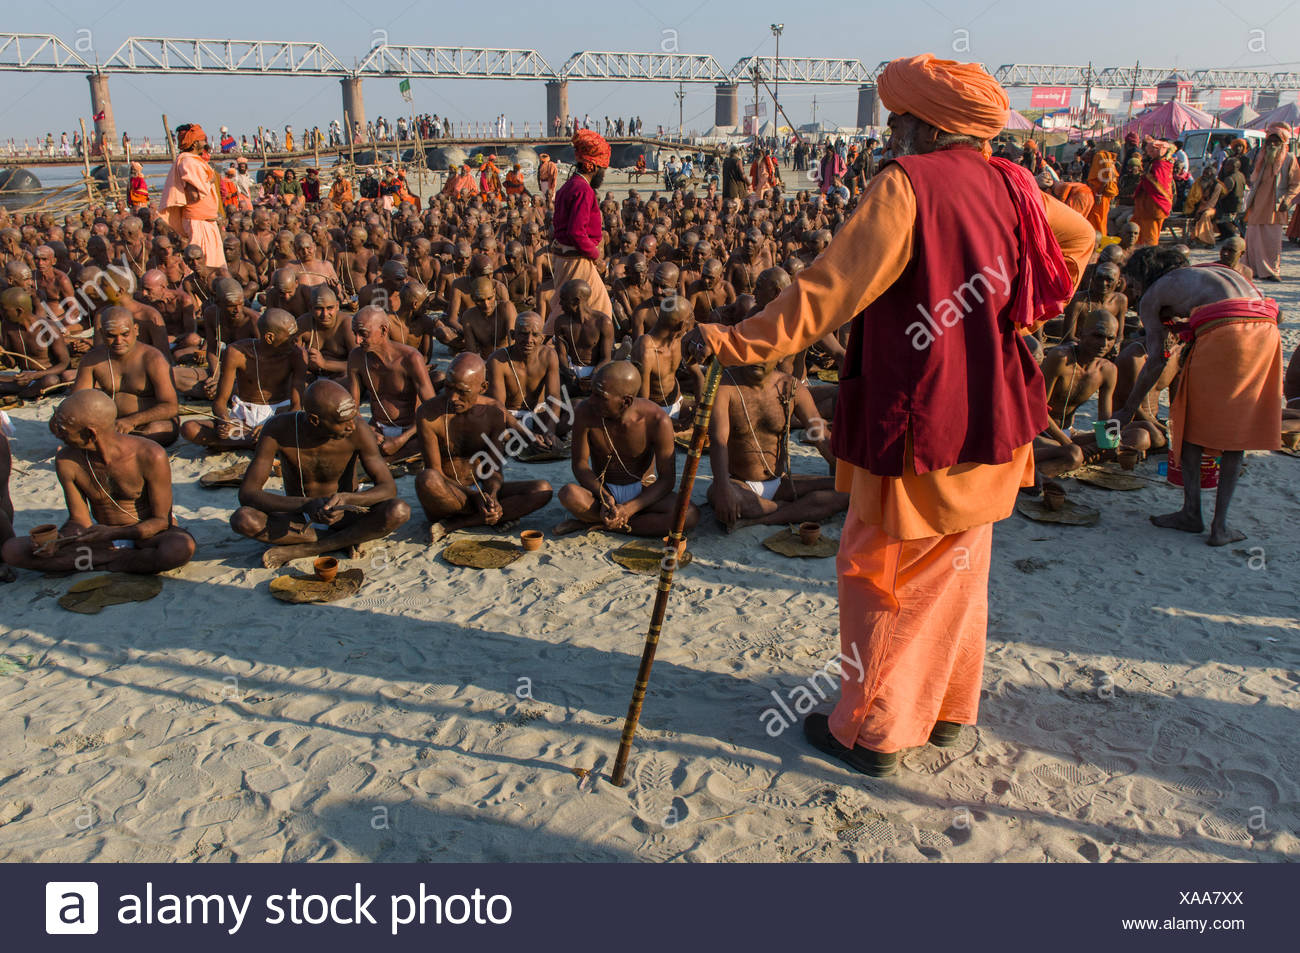 Taking their first meal in their new lives as part of the initiation of new sadhus at the Sangam, the confluence of the rivers - Stock Image